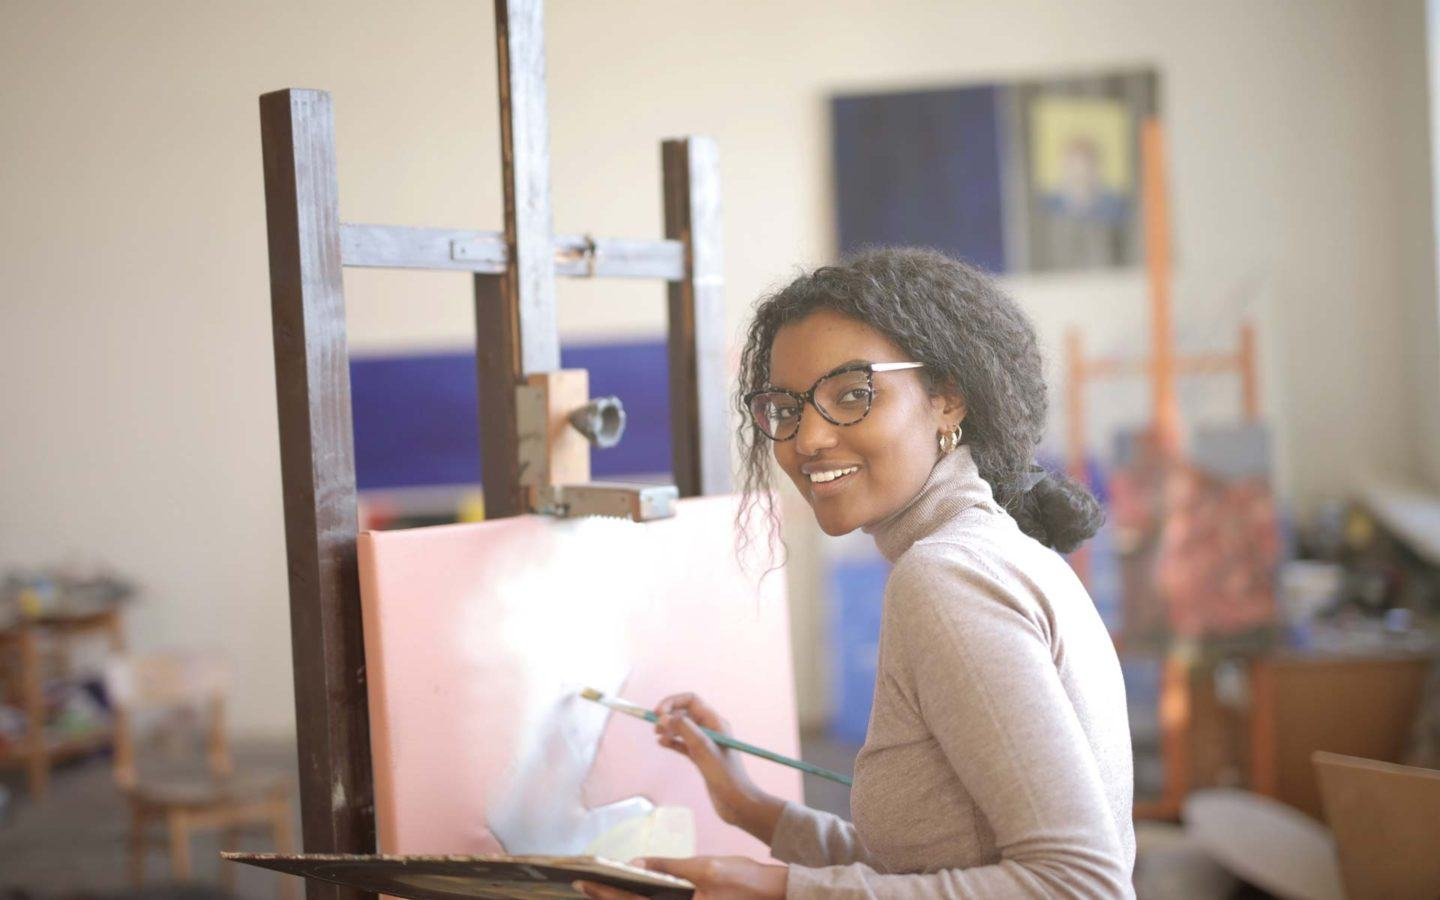 a woman smiling and painting on a canvas